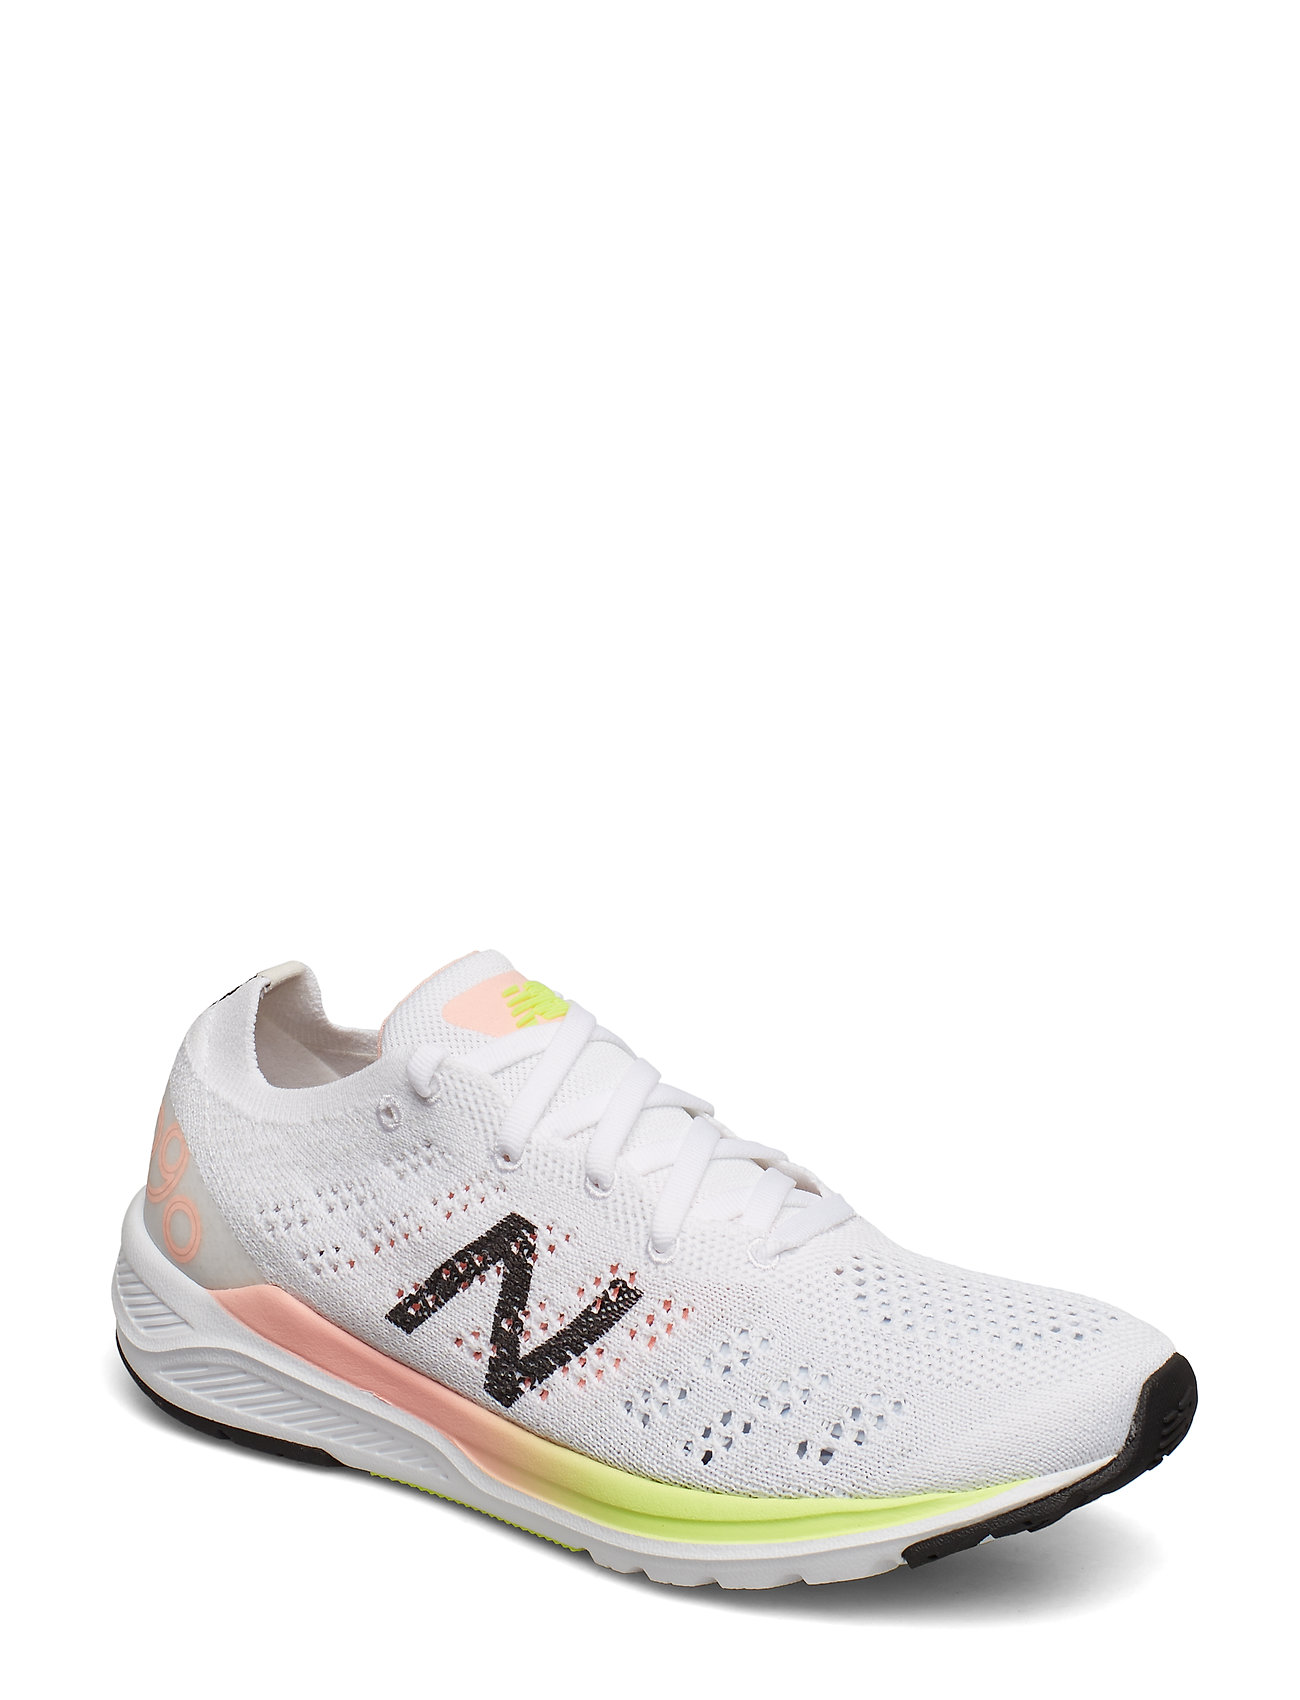 Image of W890wo7 Shoes Sport Shoes Running Shoes Grå NEW BALANCE (3161835743)